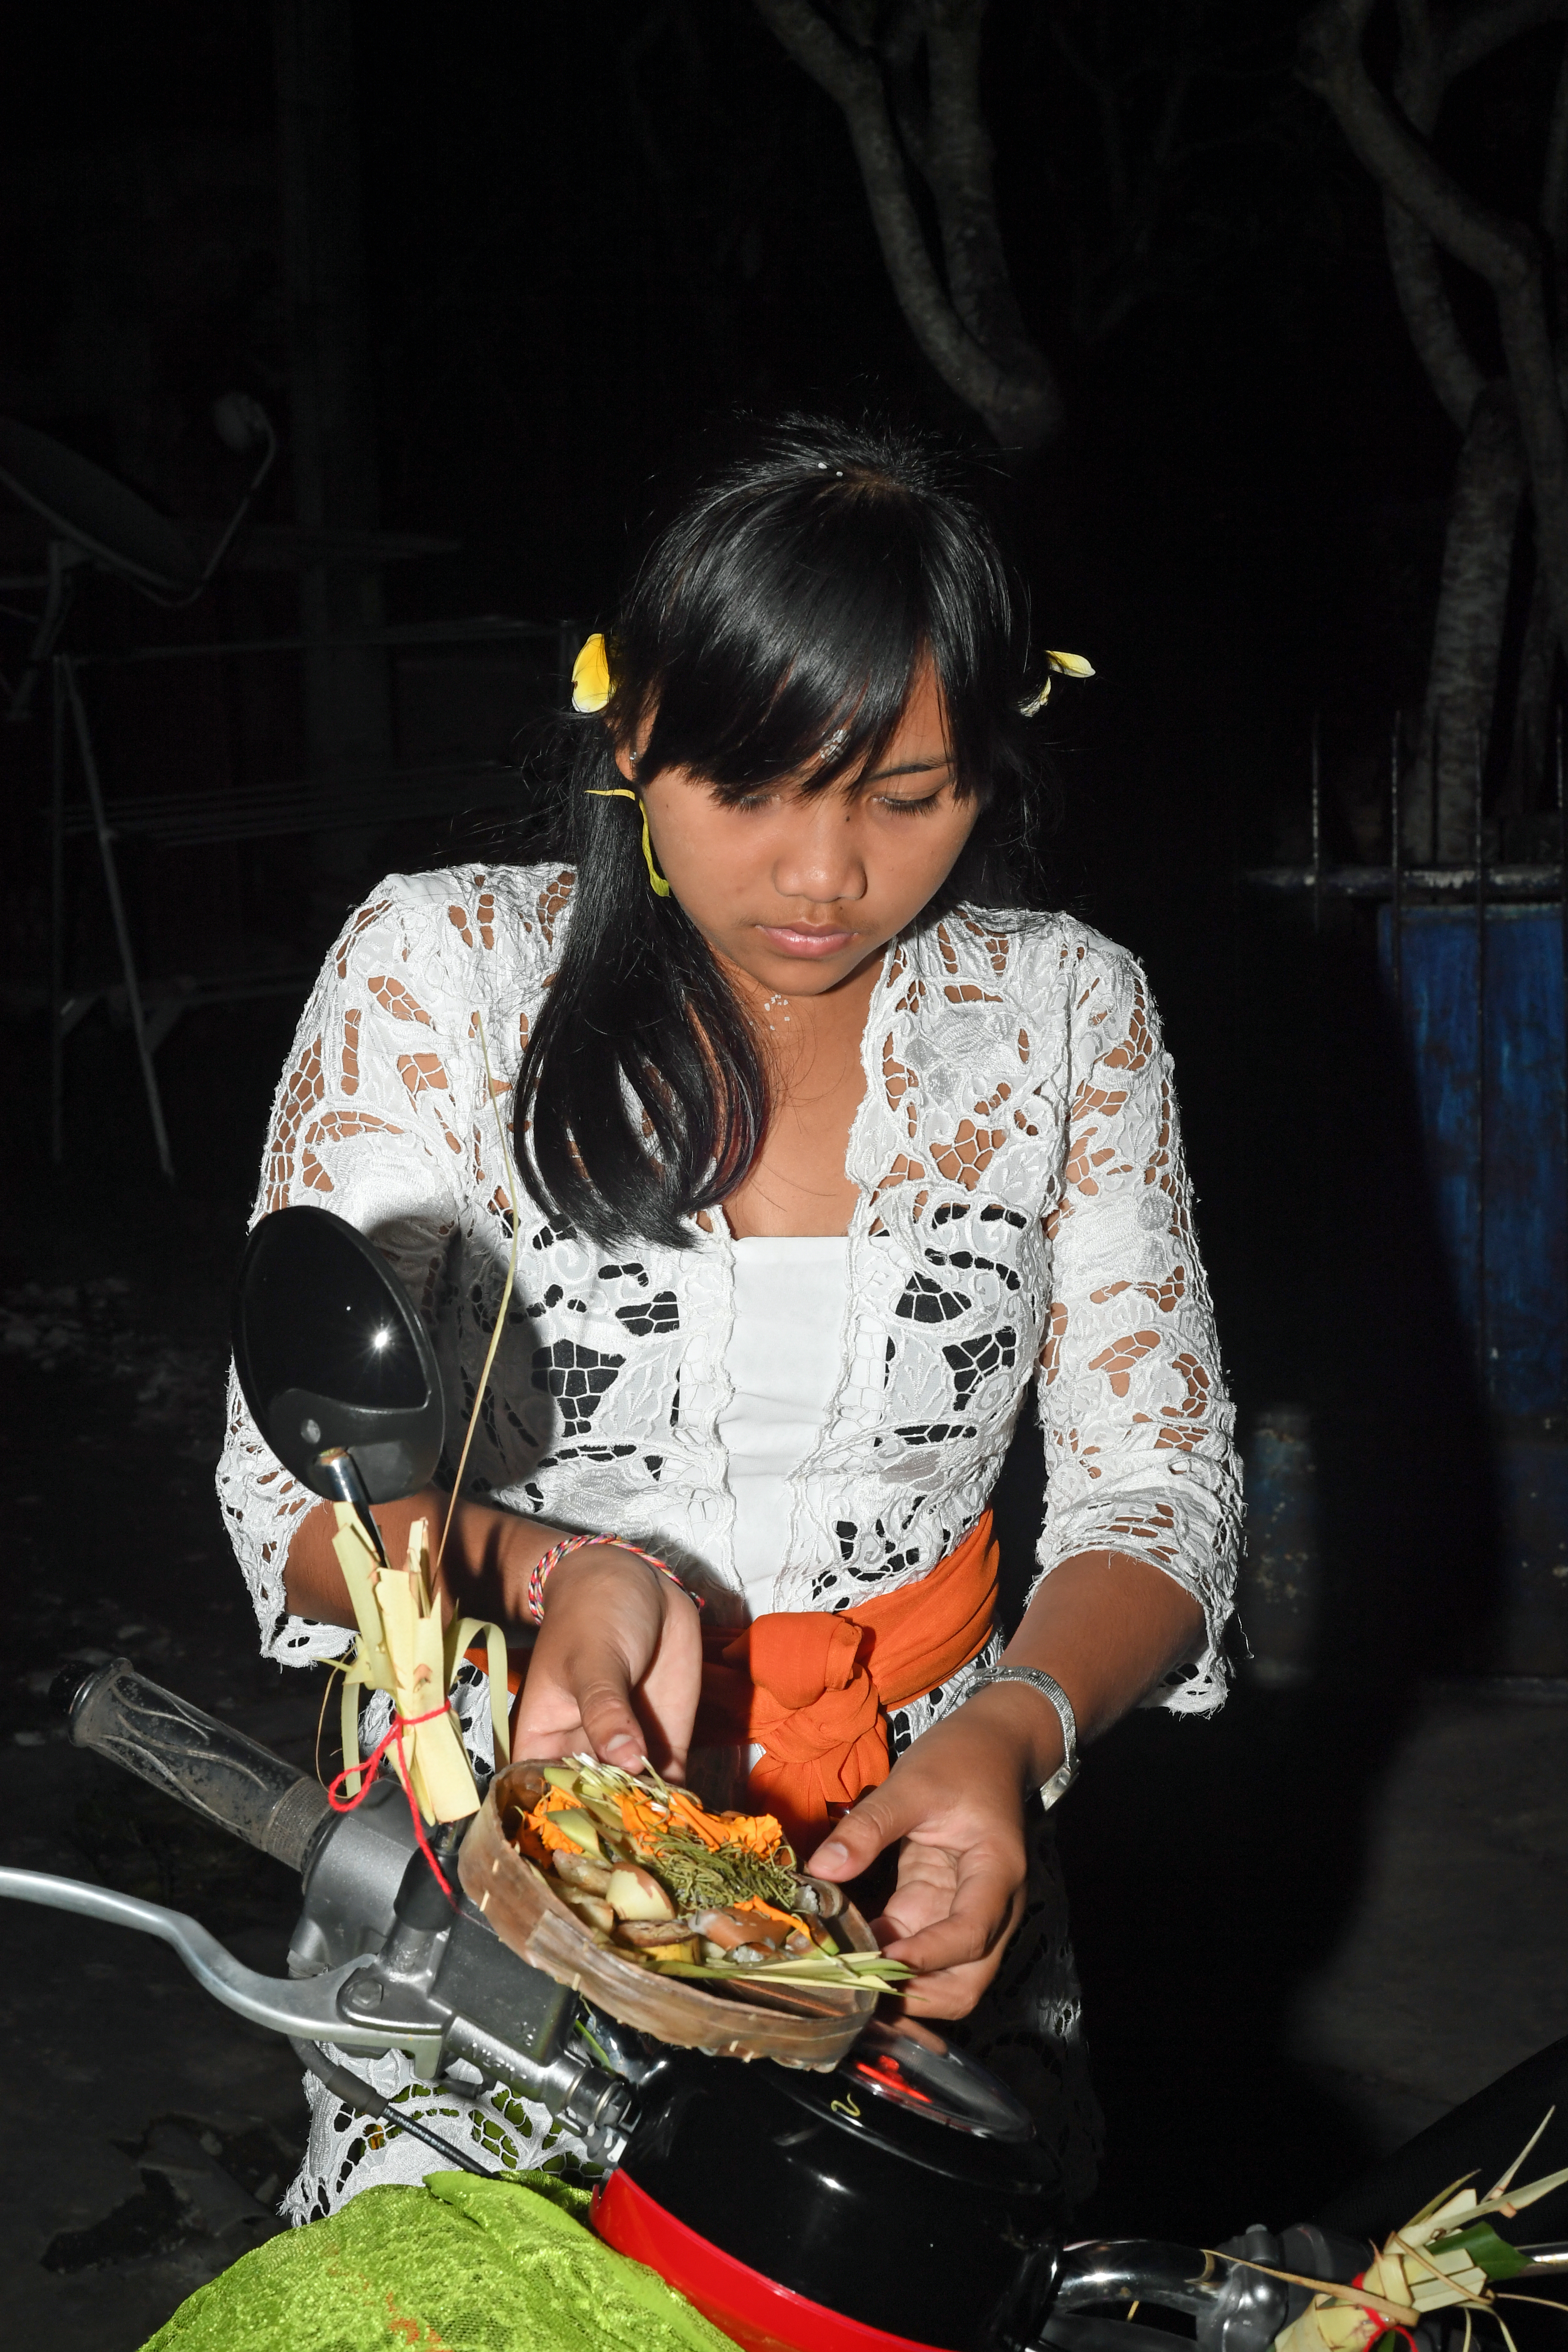 DG264162. Girl placing blessings on a scooter during . Tumpak Lendep. Ubud. Bali. Indonesia. 4.2.17.JPG